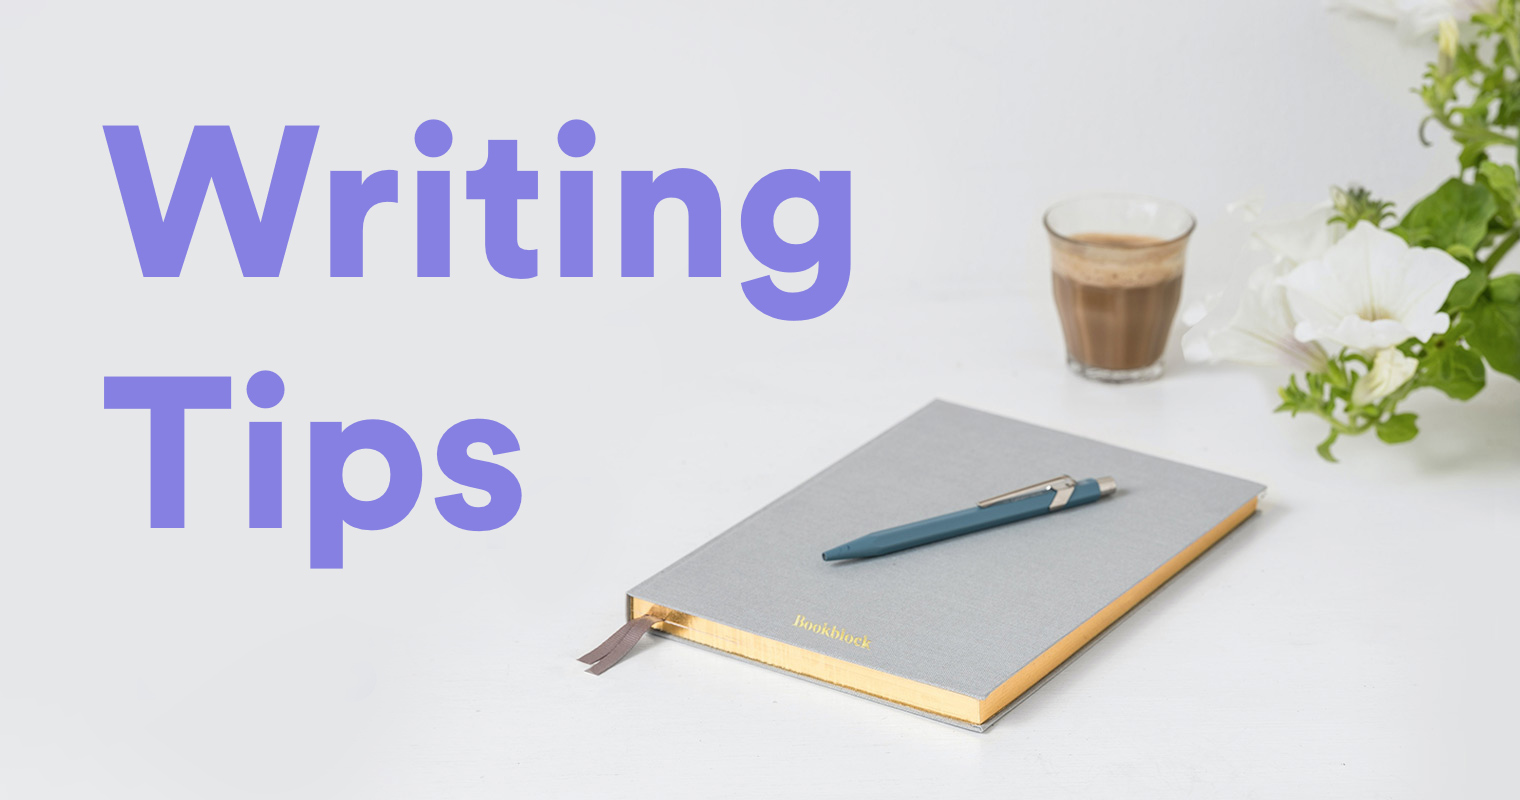 30 Writing Tips to Make Writing Easier